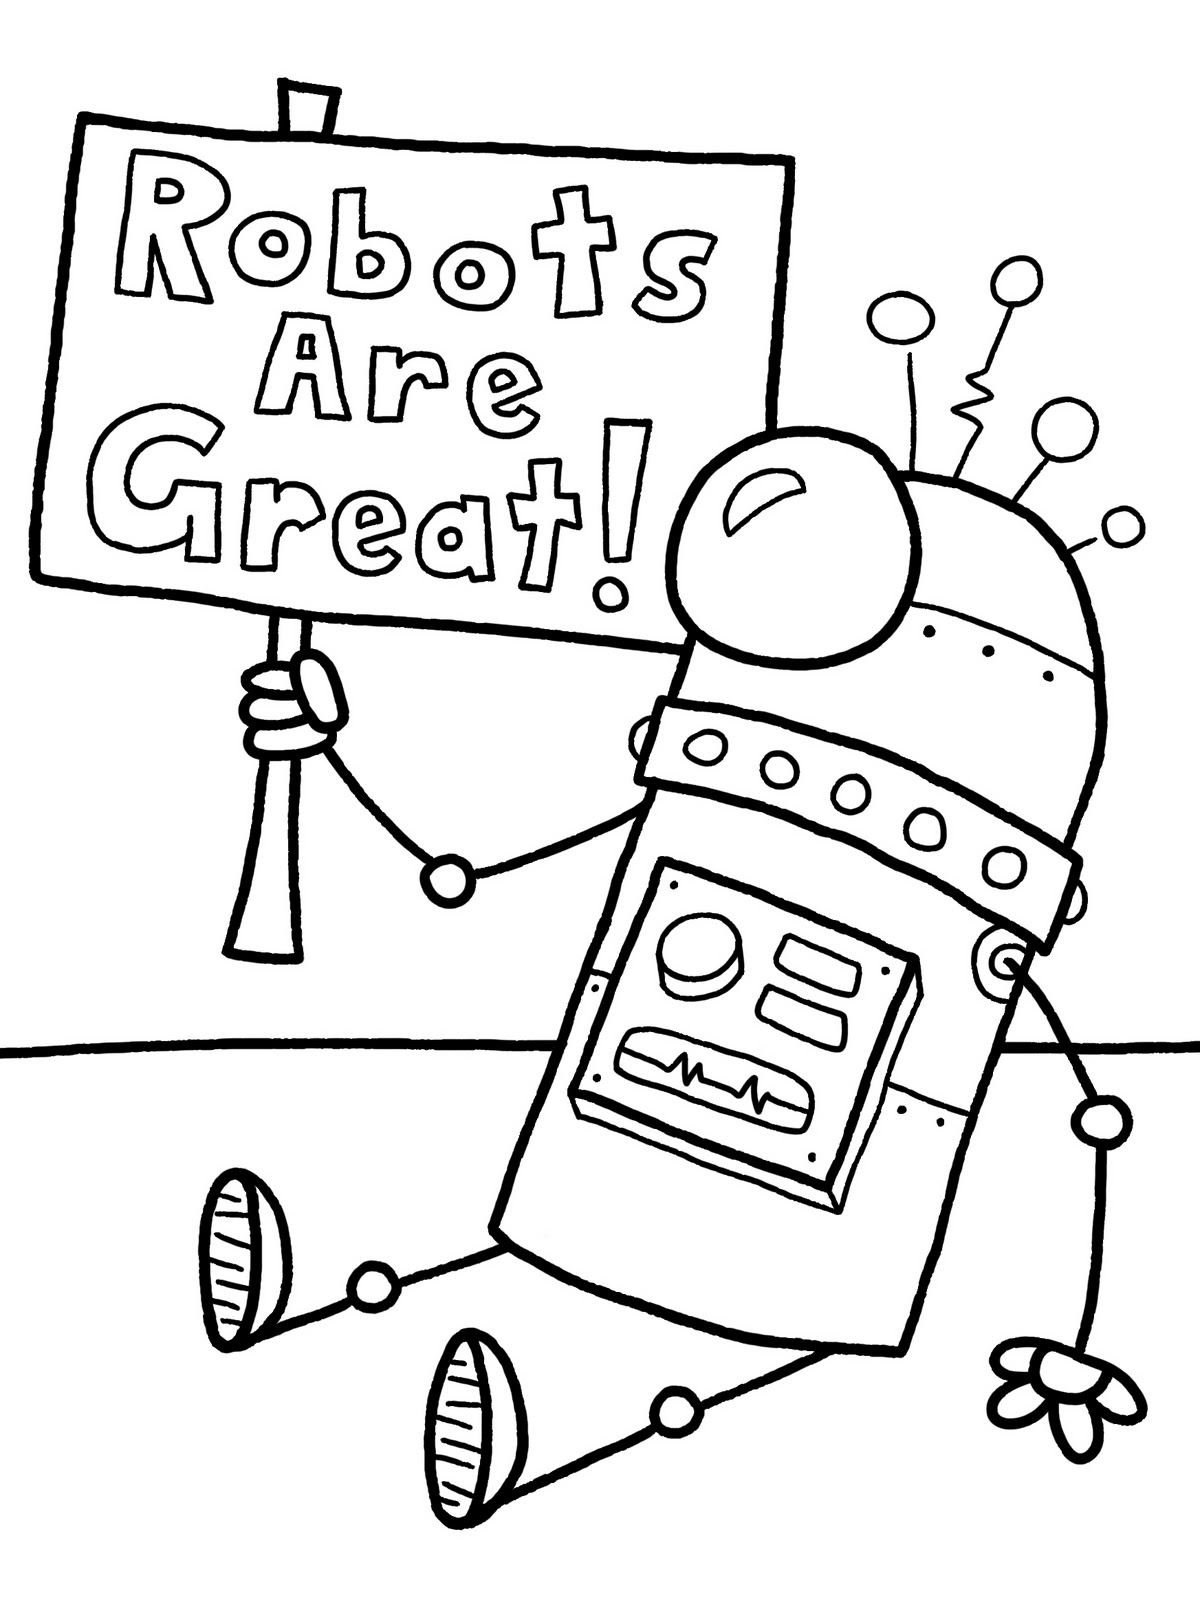 Coloring Pages Printable Robot Coloring Pages robot coloring pages for kids free printable go ahead and print them out your or yourself enjoy